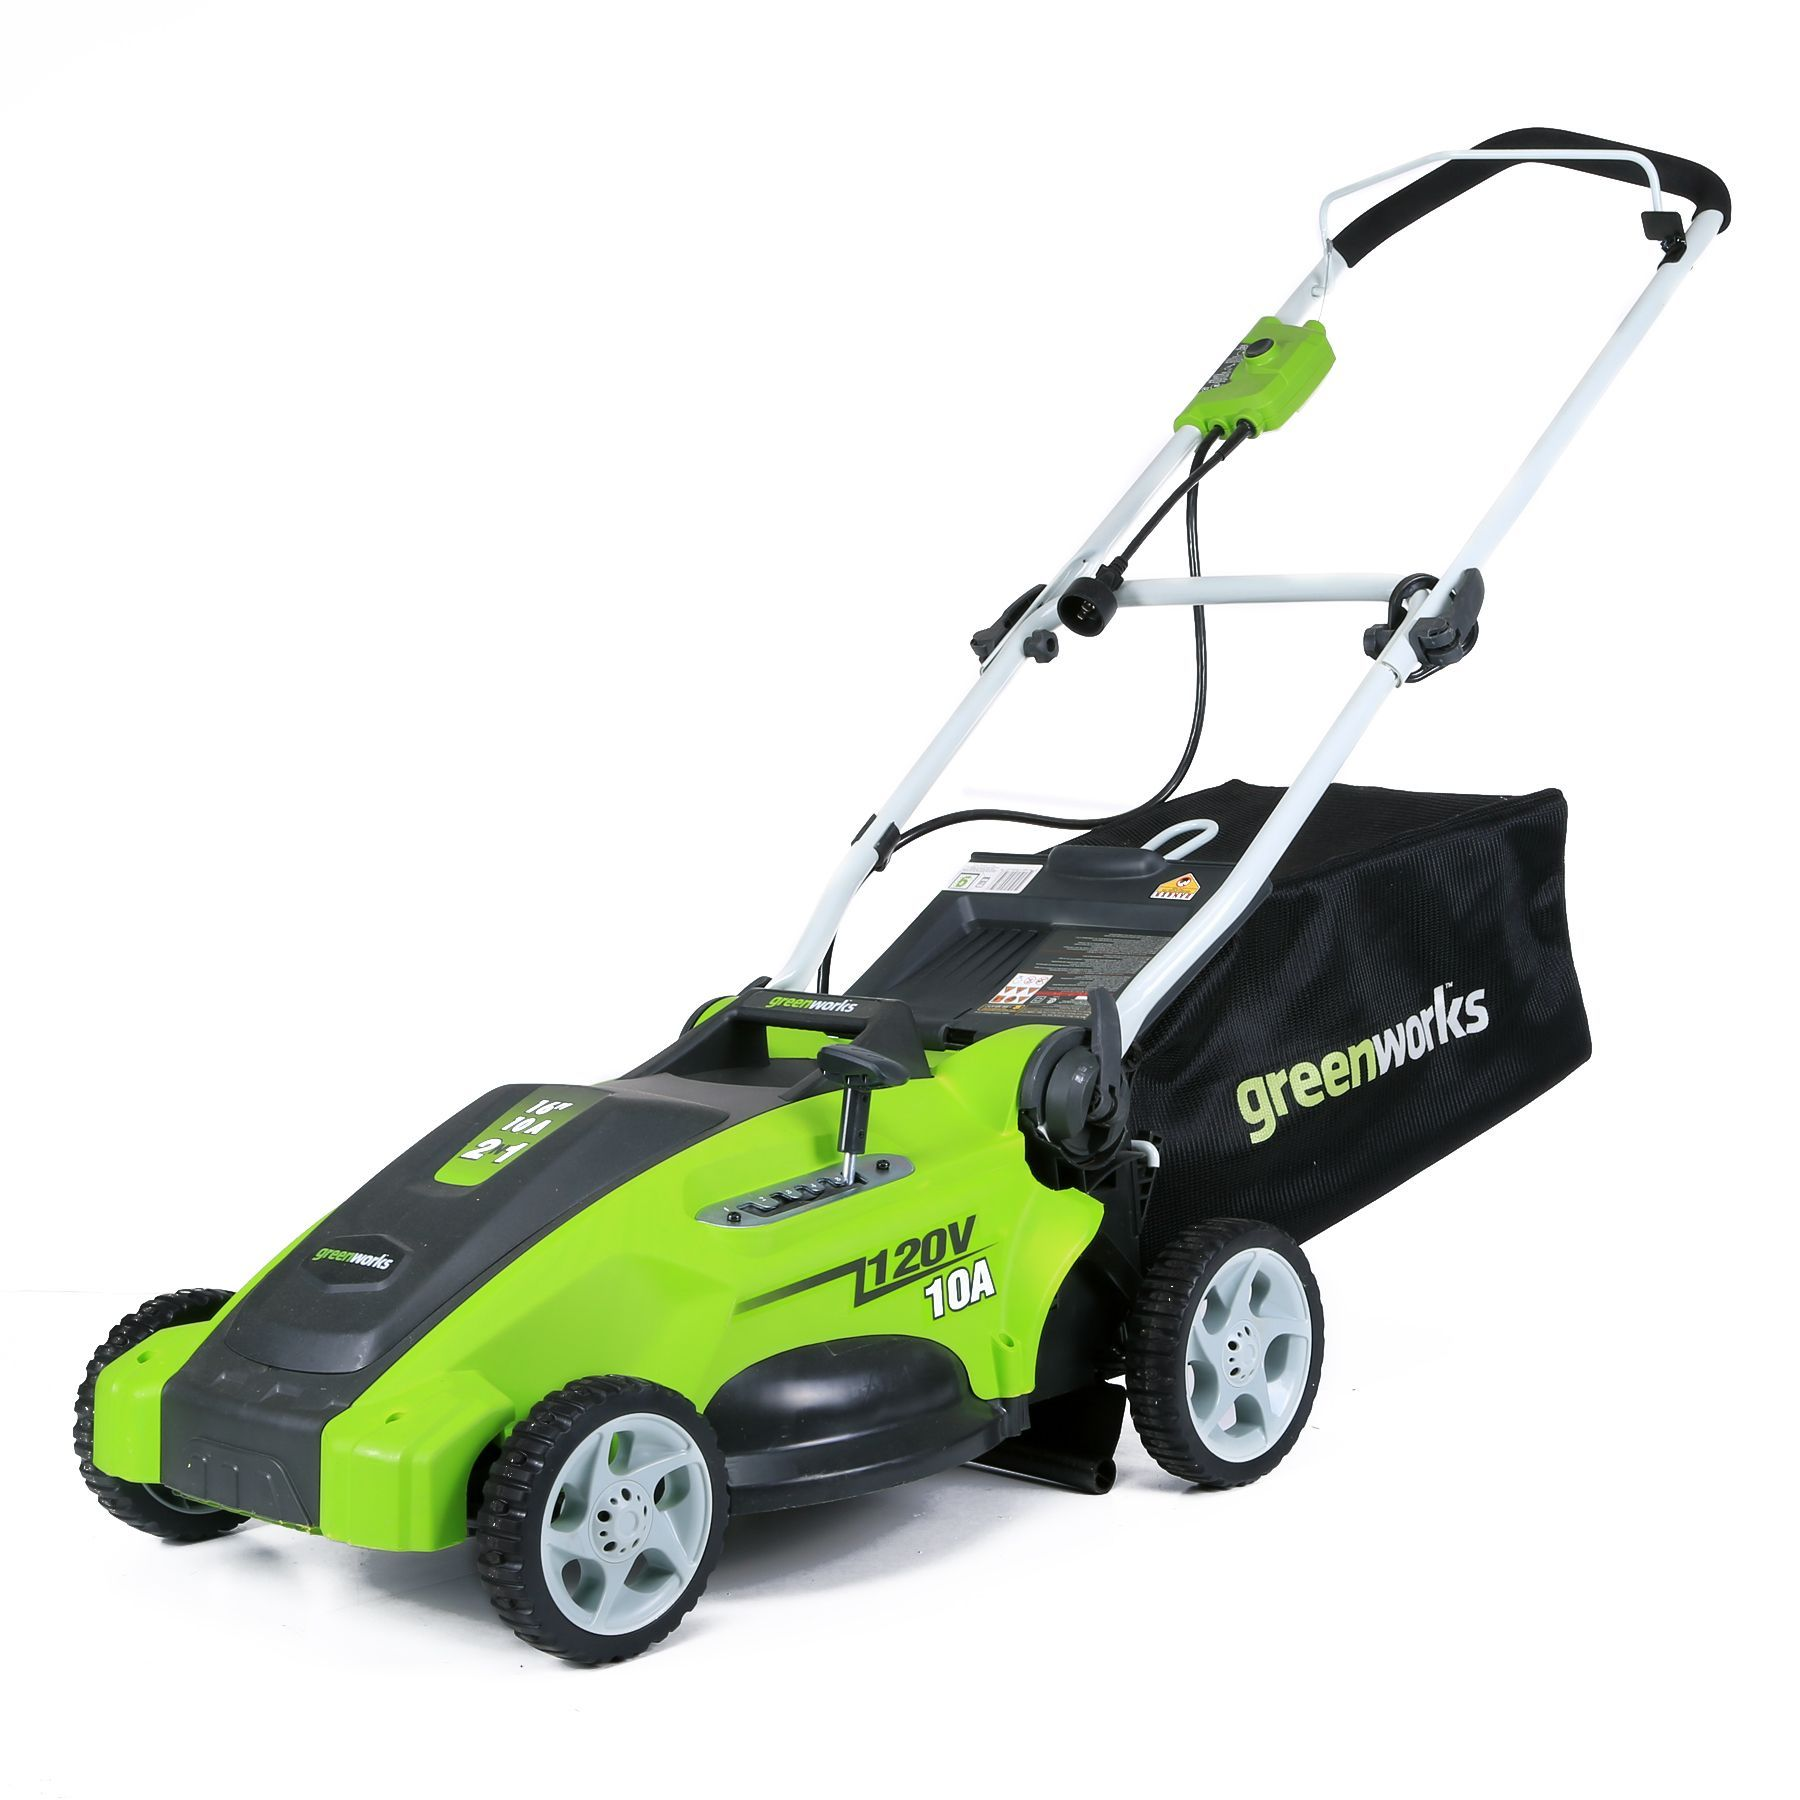 GreenWorks 25142 10amp Corded 16inch Lawn Mower, Green (Metal) is part of lawn Design Mulches - 8' for the perfect cut on all types of grass 7' rear wheels and 6' front wheels for maneuverability GreenWorks brand lawn mower with model number 25142 with removable discharge bag and mulch plug Constructed of steel, plastic and rubber for durability Measures 27 inches high x 16 inches wide x 14 inches deep Assembly required  Color Green